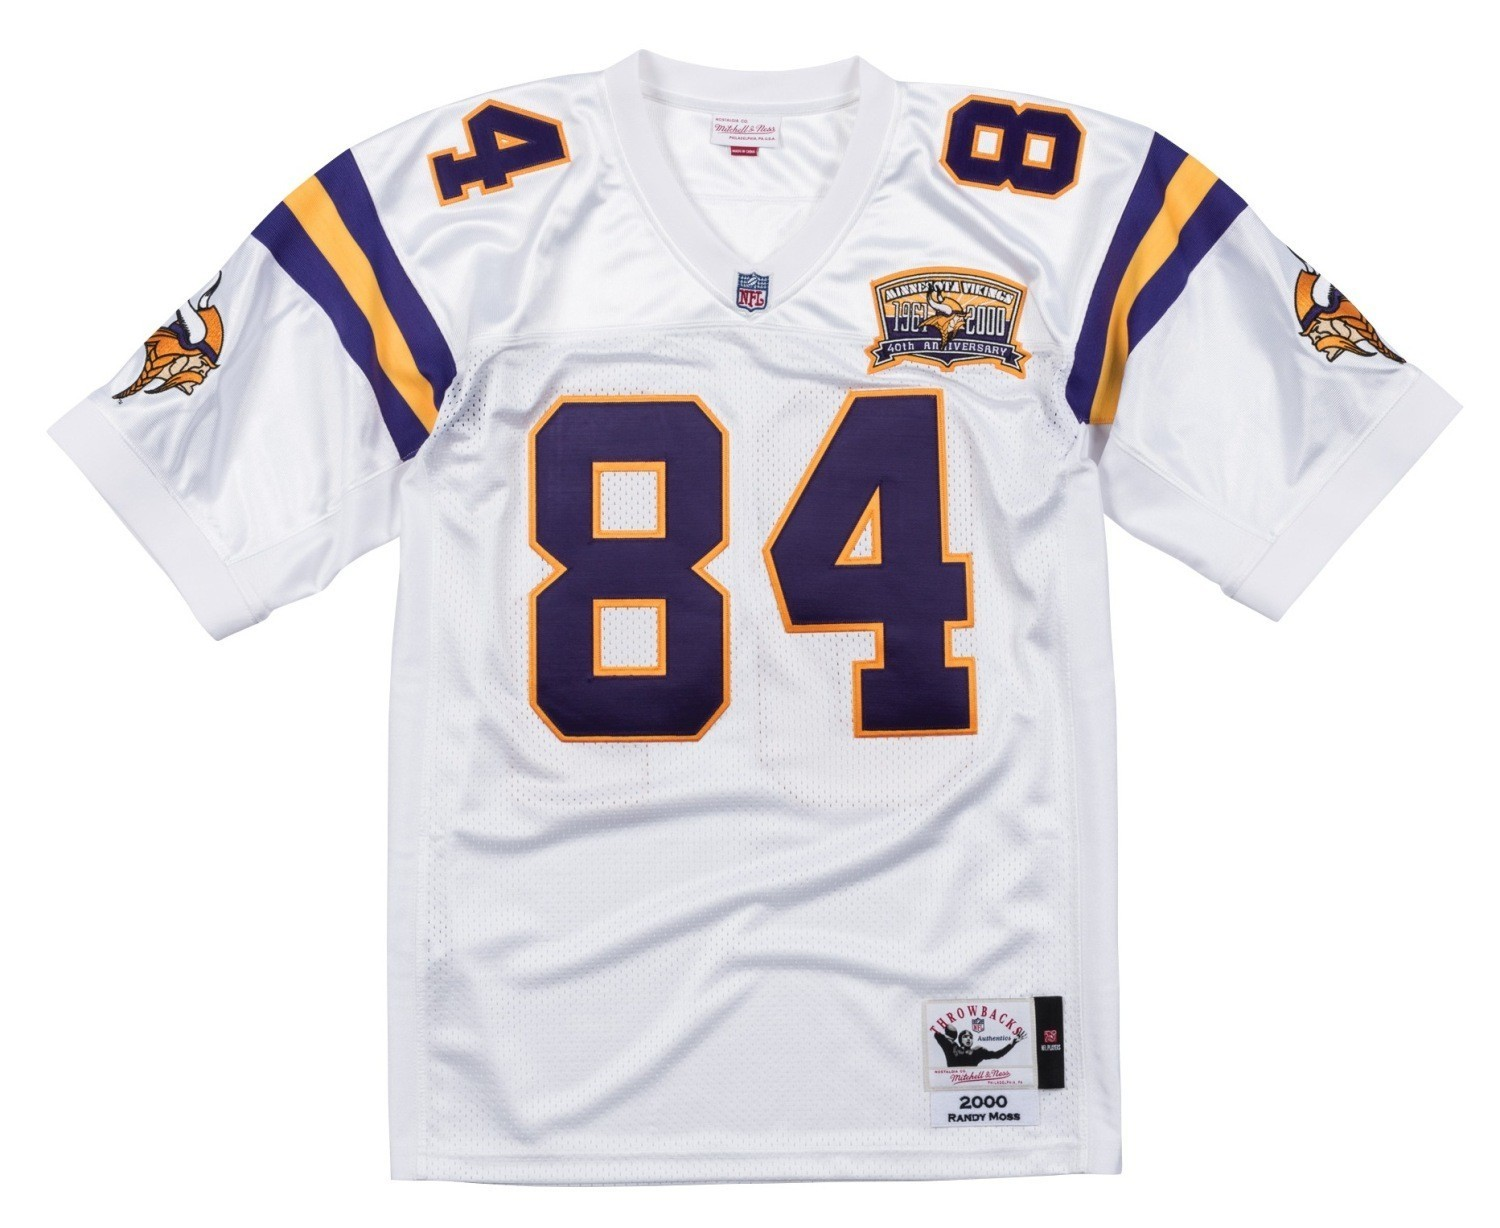 a982c4f77 Details about Randy Moss Minnesota Vikings NFL Mitchell   Ness Authentic  2000 Jersey